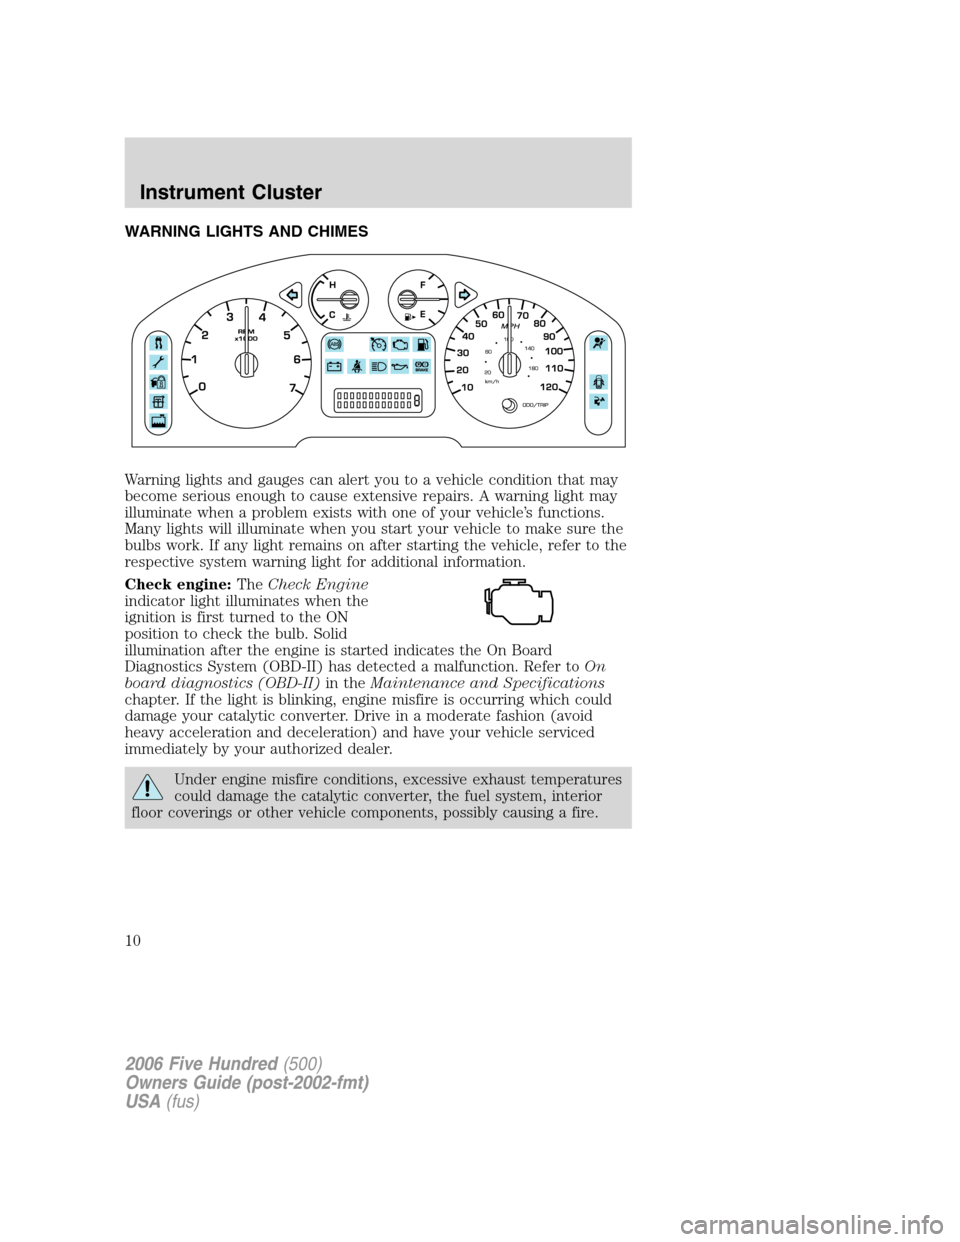 Ford five hundred 2006 d258 1g owners manual page 10 of 280 buycottarizona